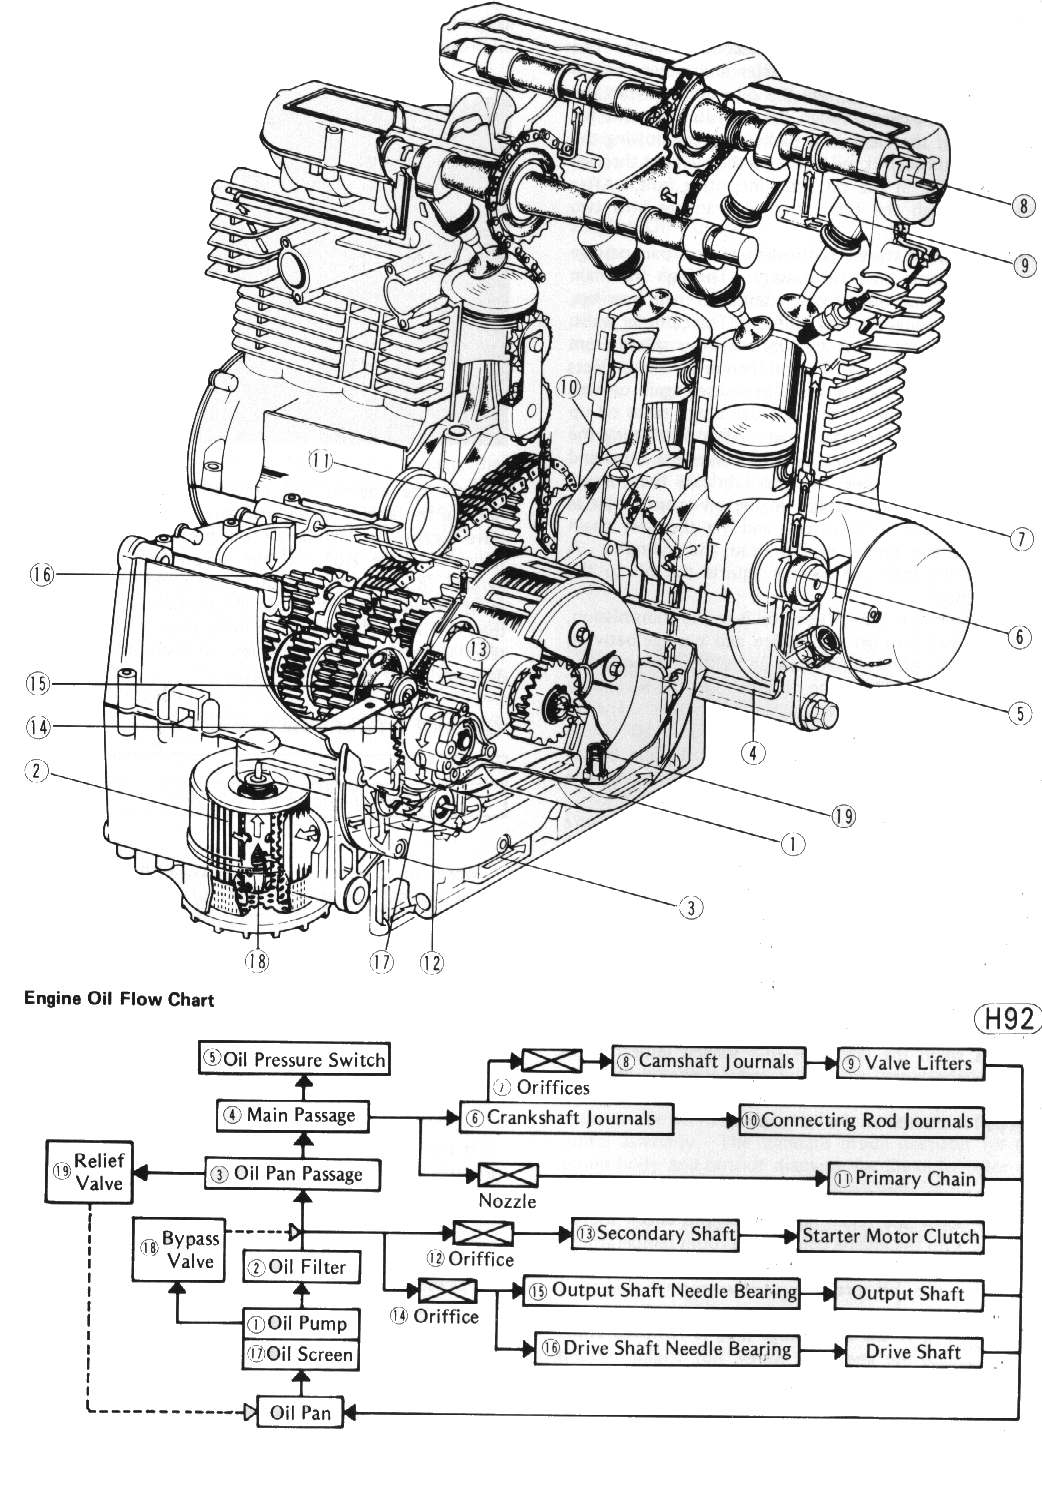 harley fl wiring diagram 1996 harley sportster wiring diagram schematic dan s motorcycle four stroke oil flow #13